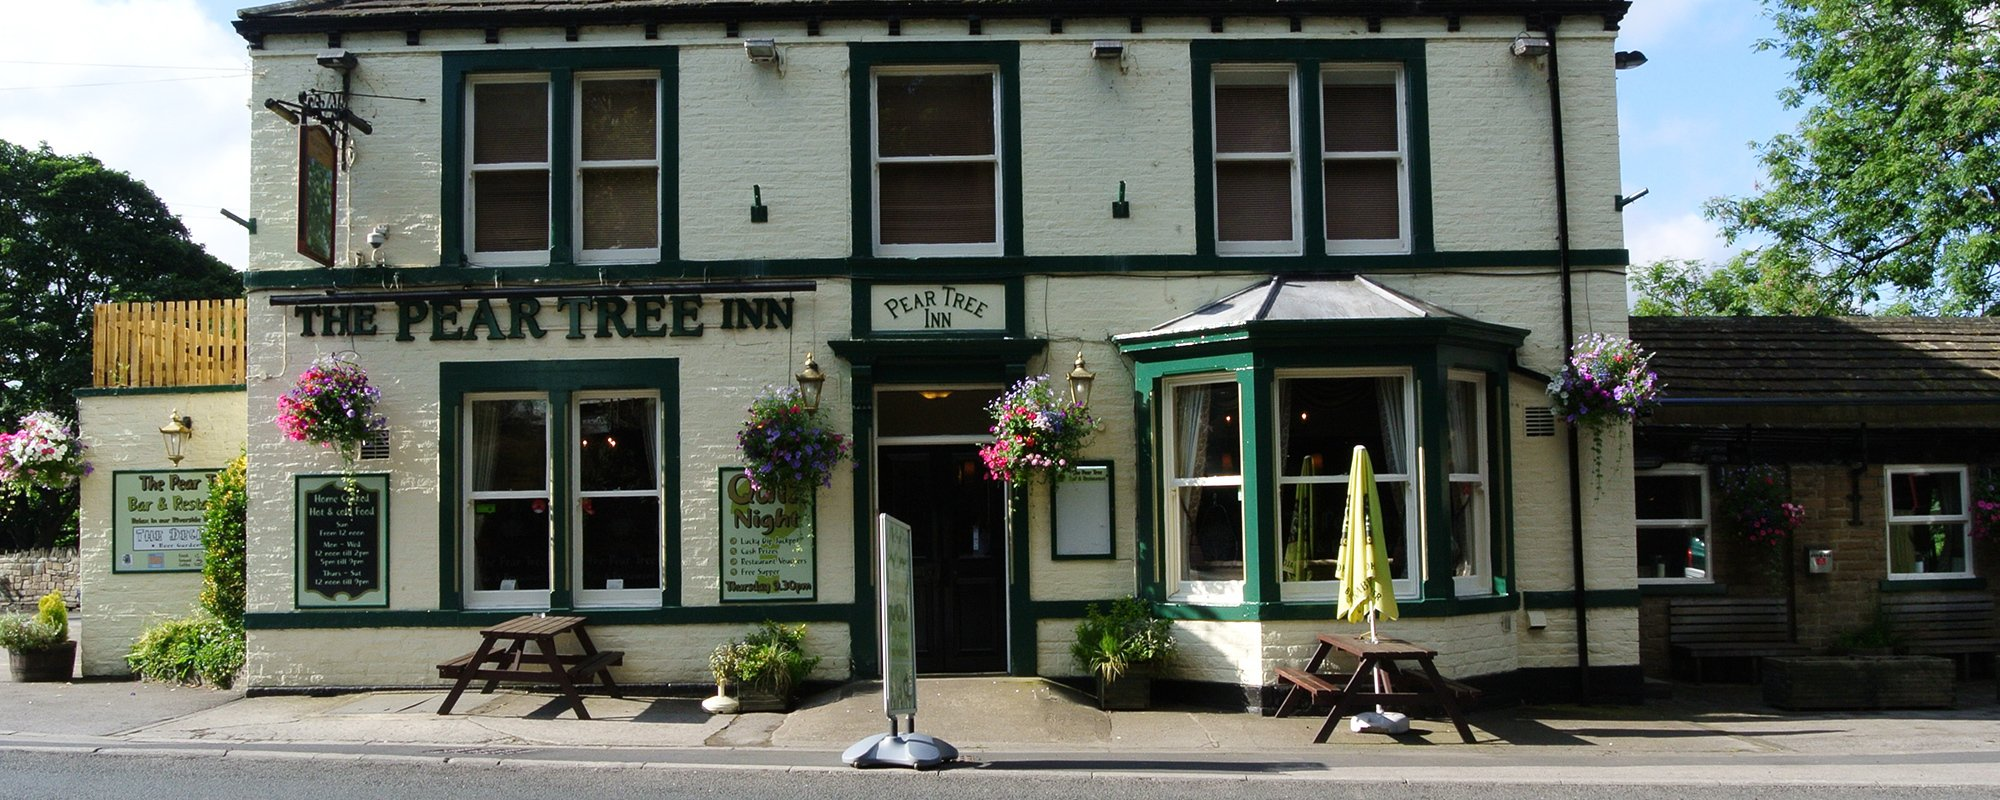 View of the entry of The Pear Tree Inn